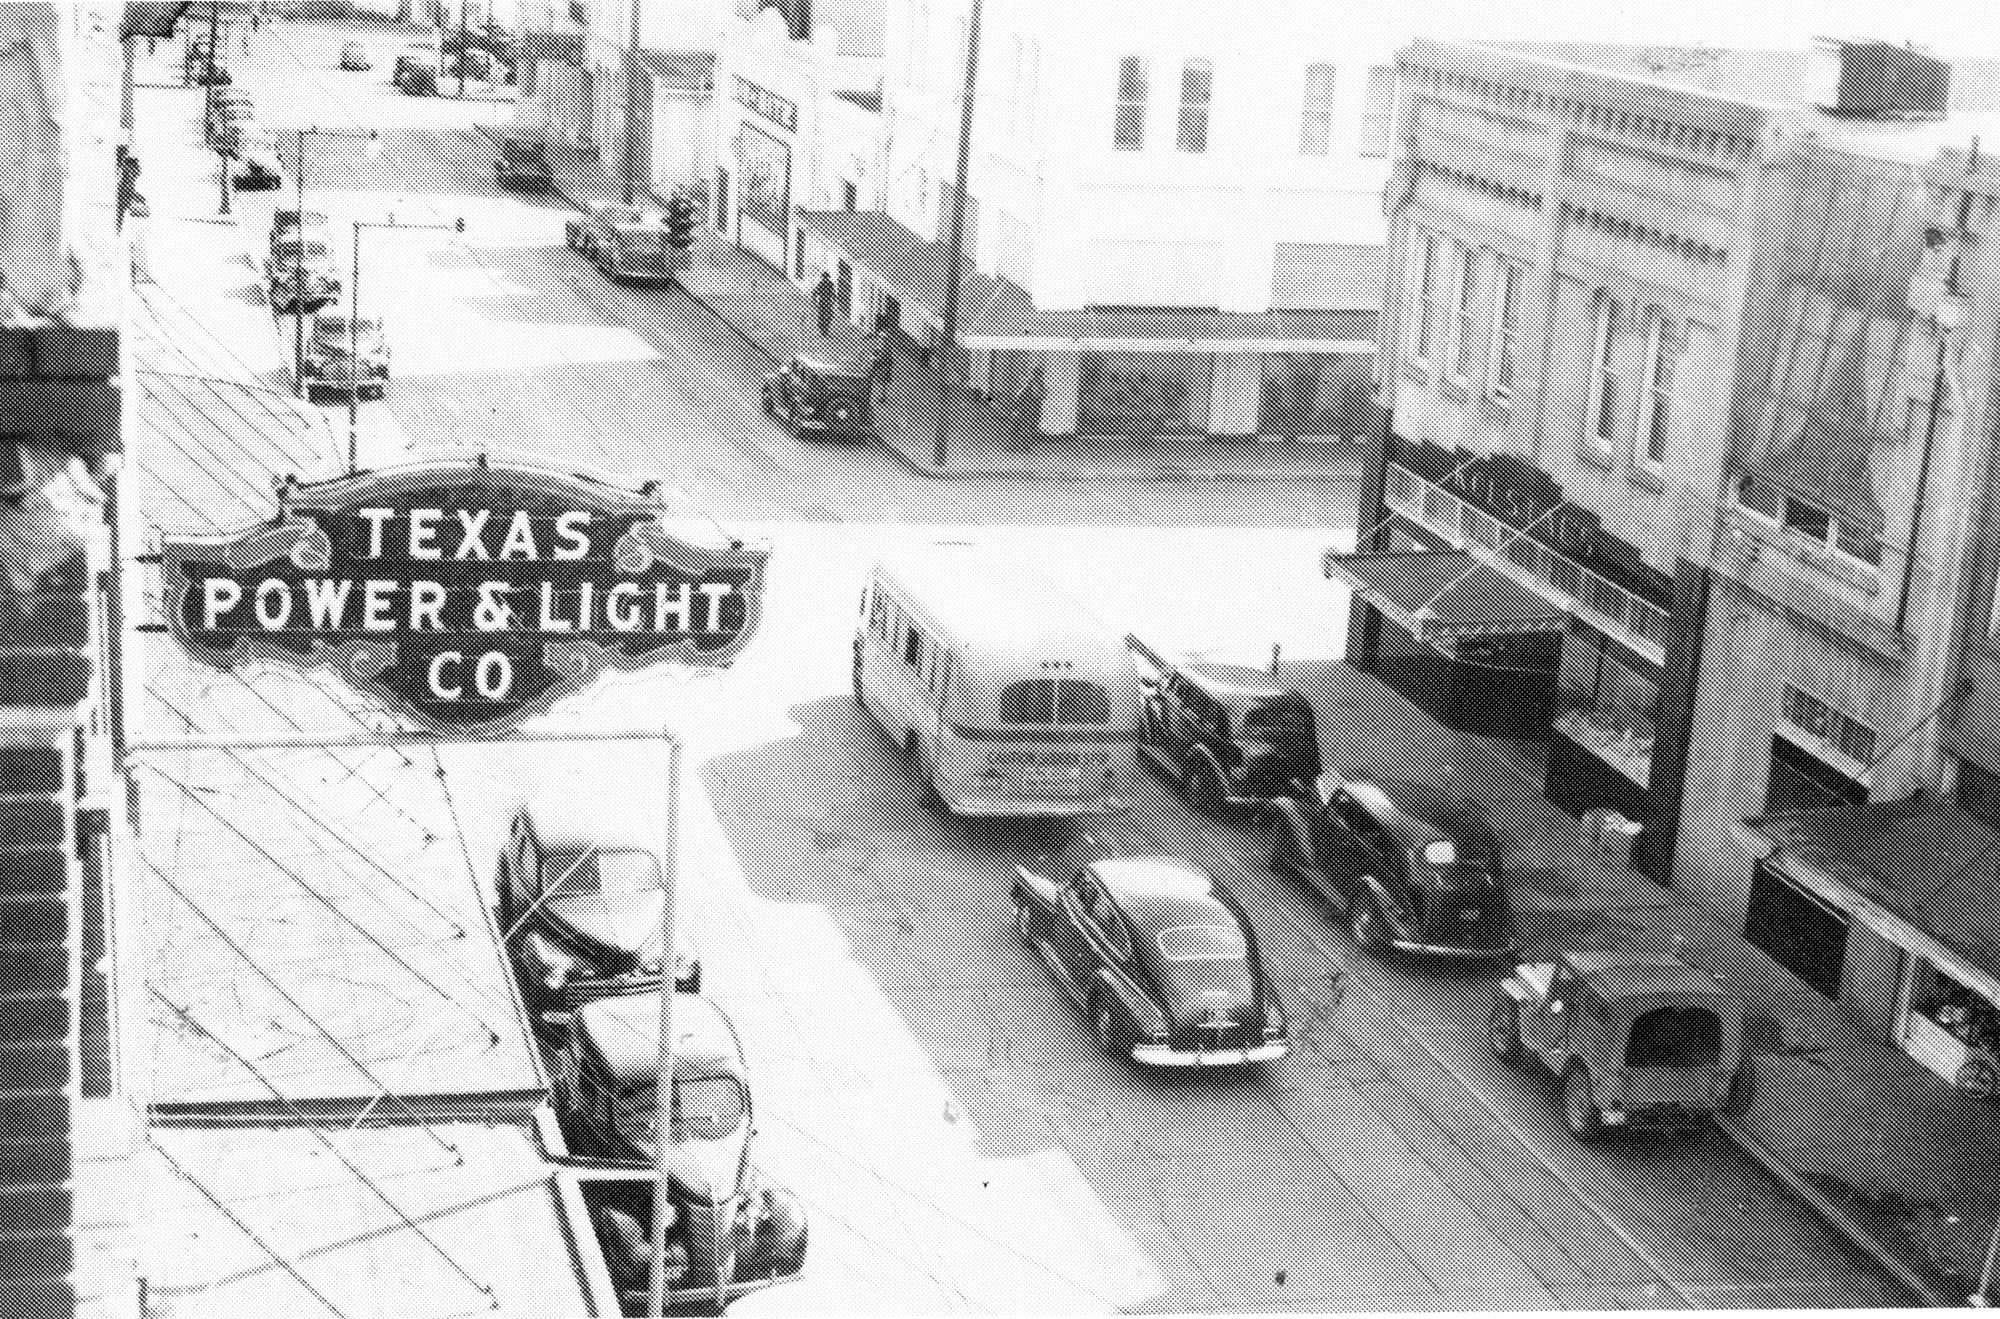 Texas Power & Light